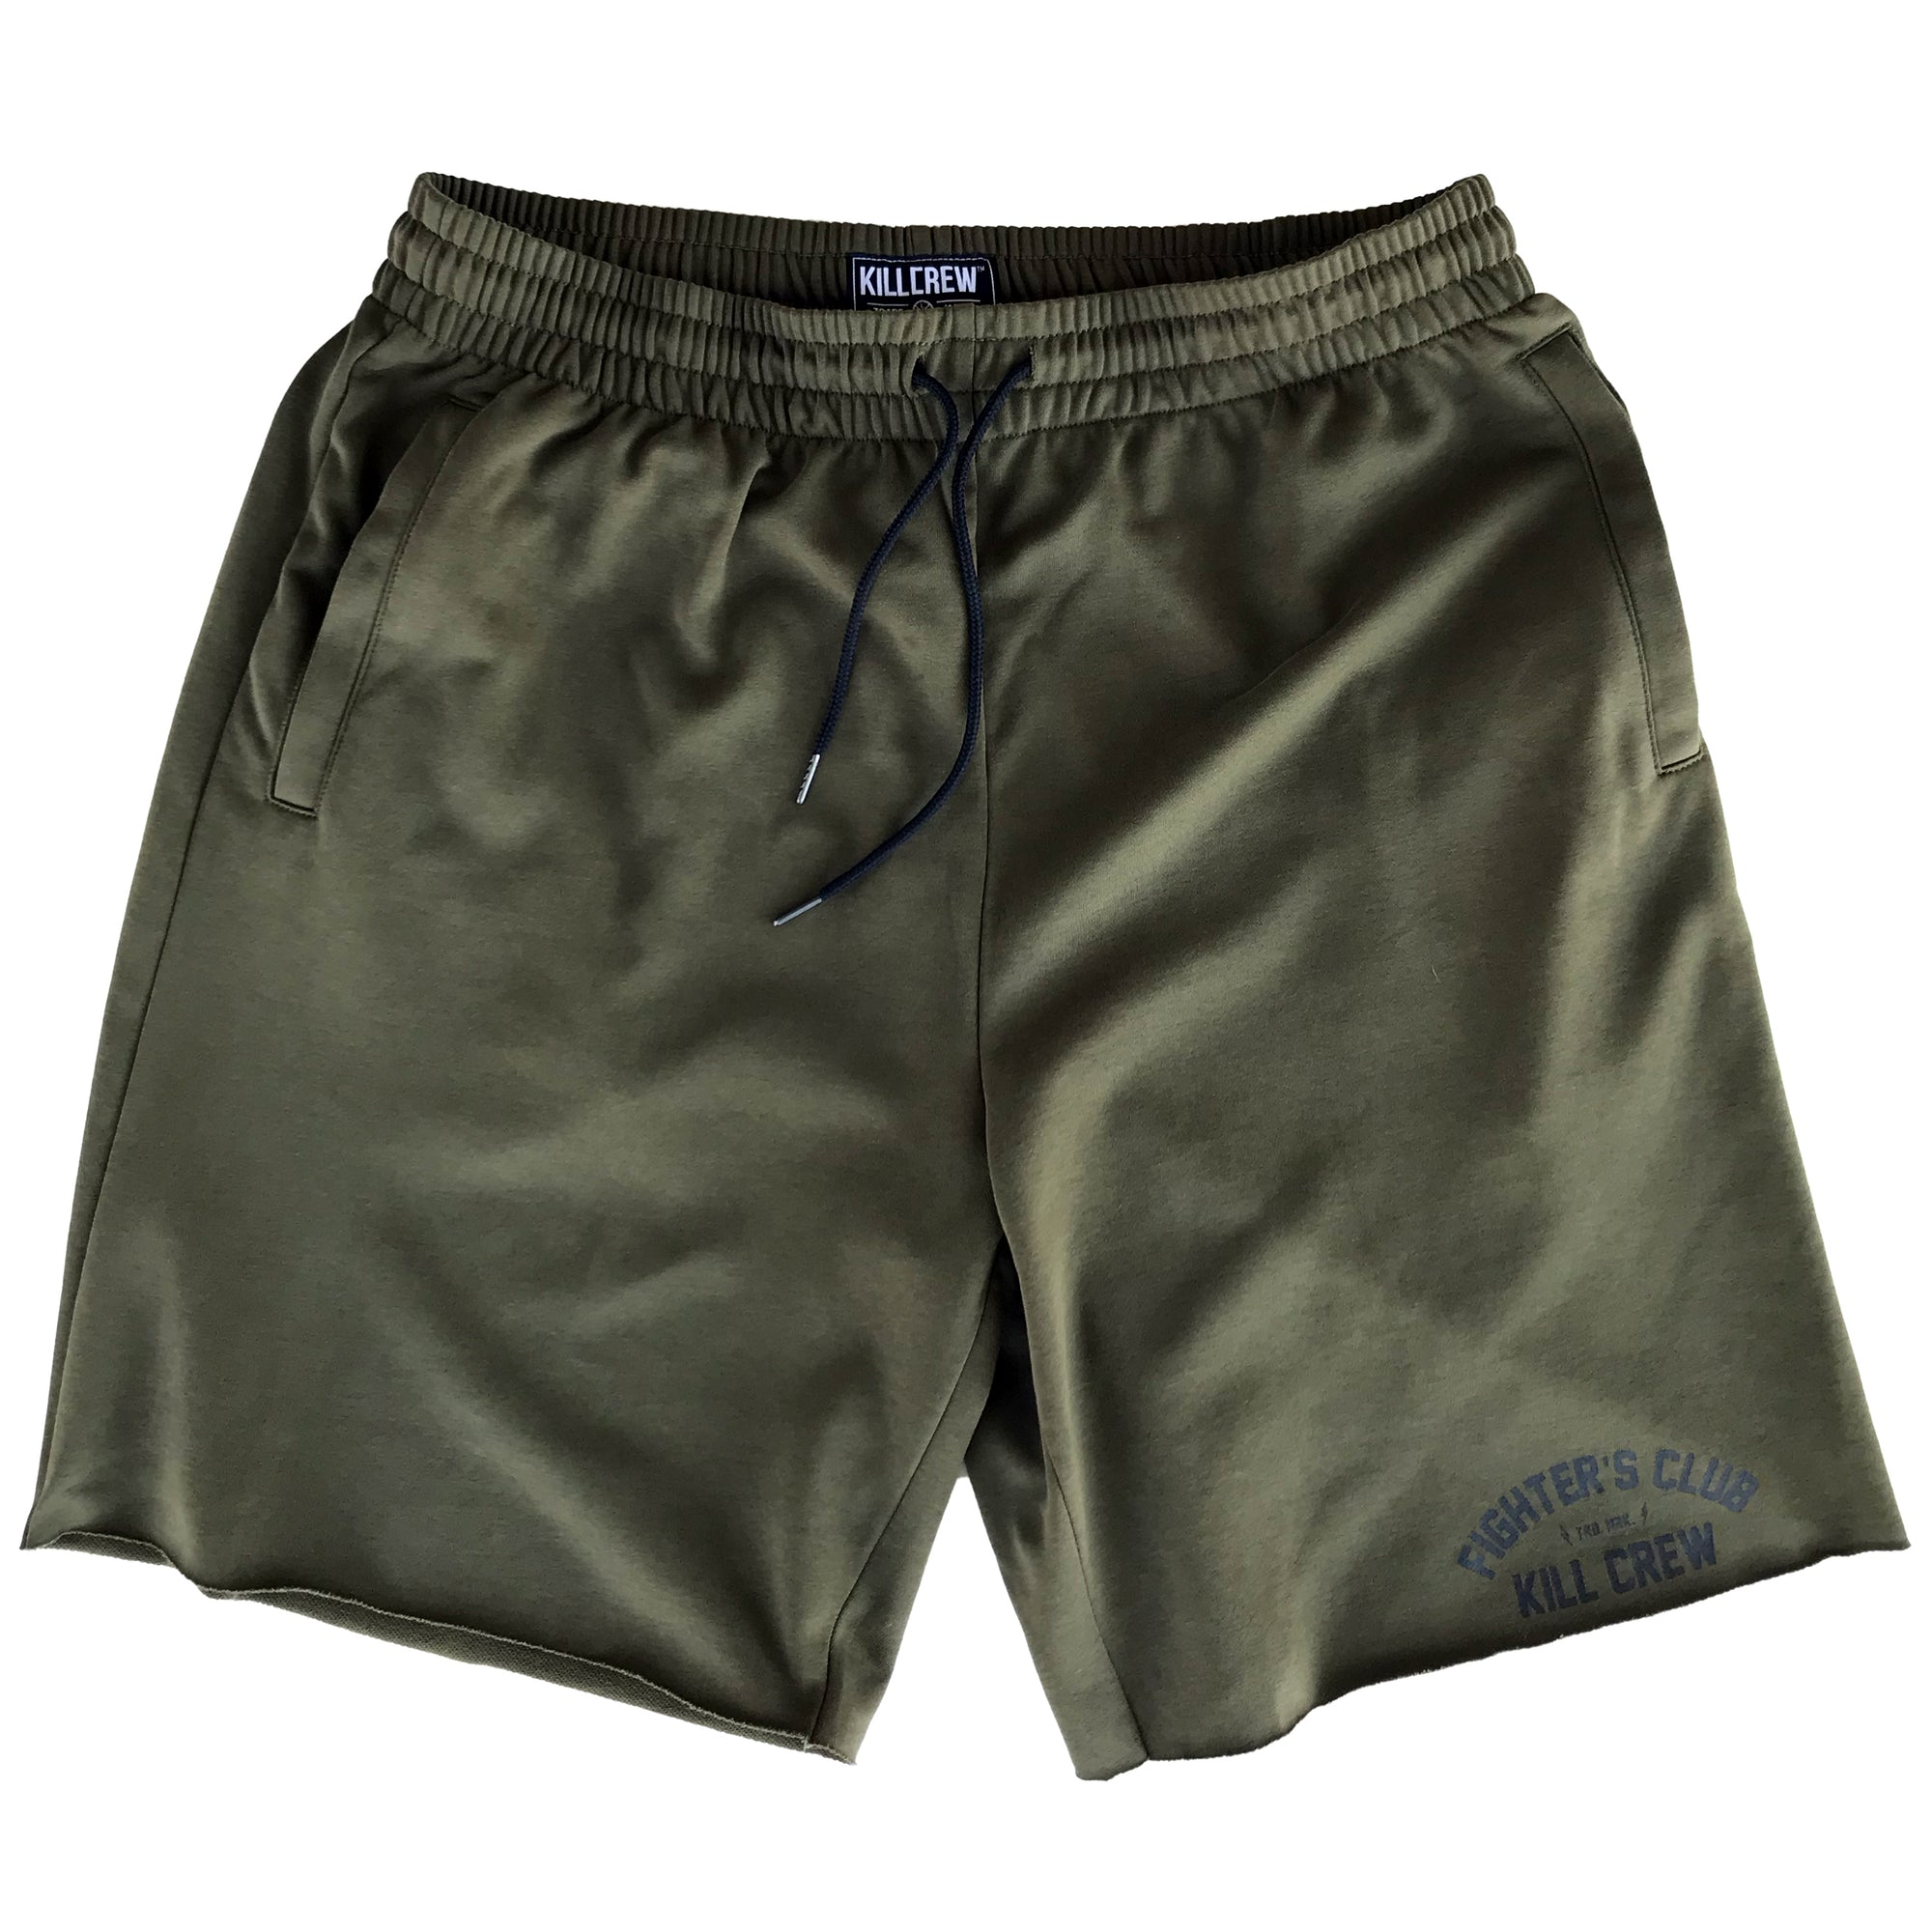 FIGHTER'S CLUB SHORTS - OLIVE